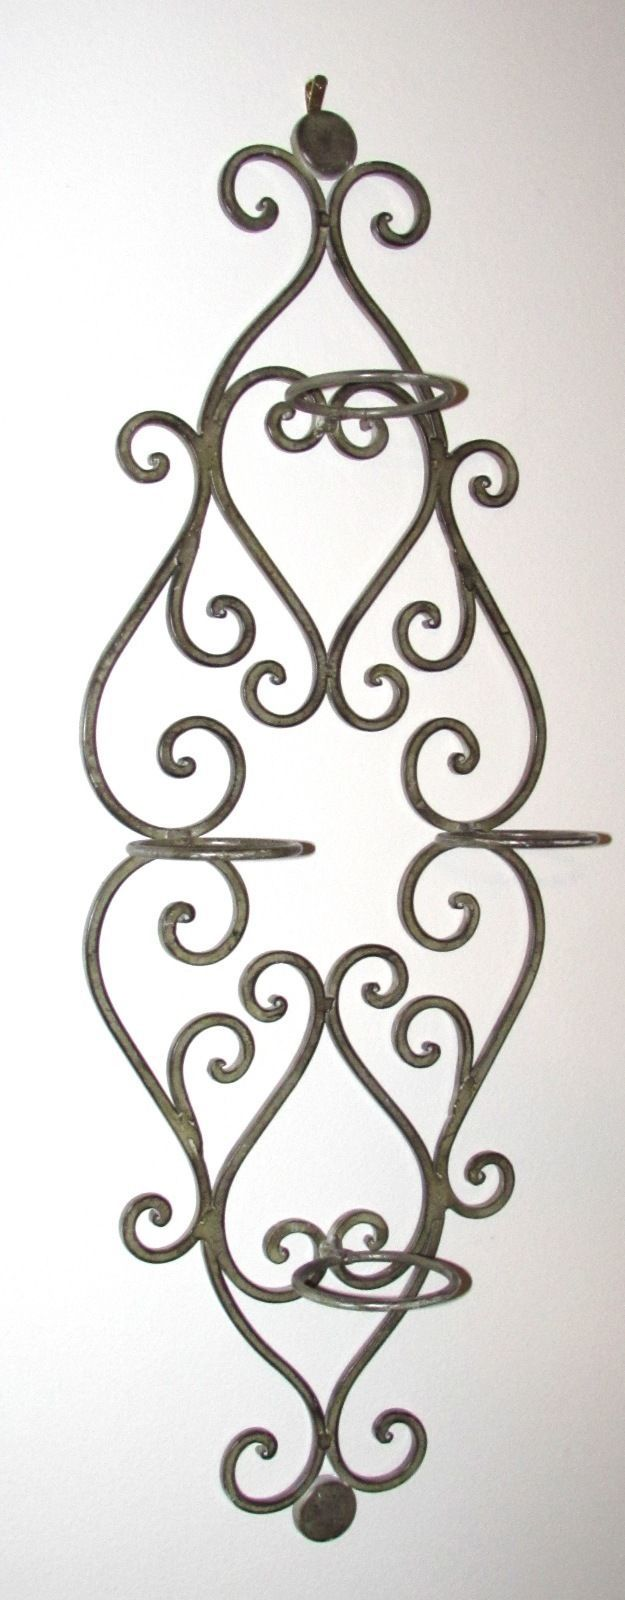 Tuscan Scrollwork Wrought Iron Candle Wall Sconce